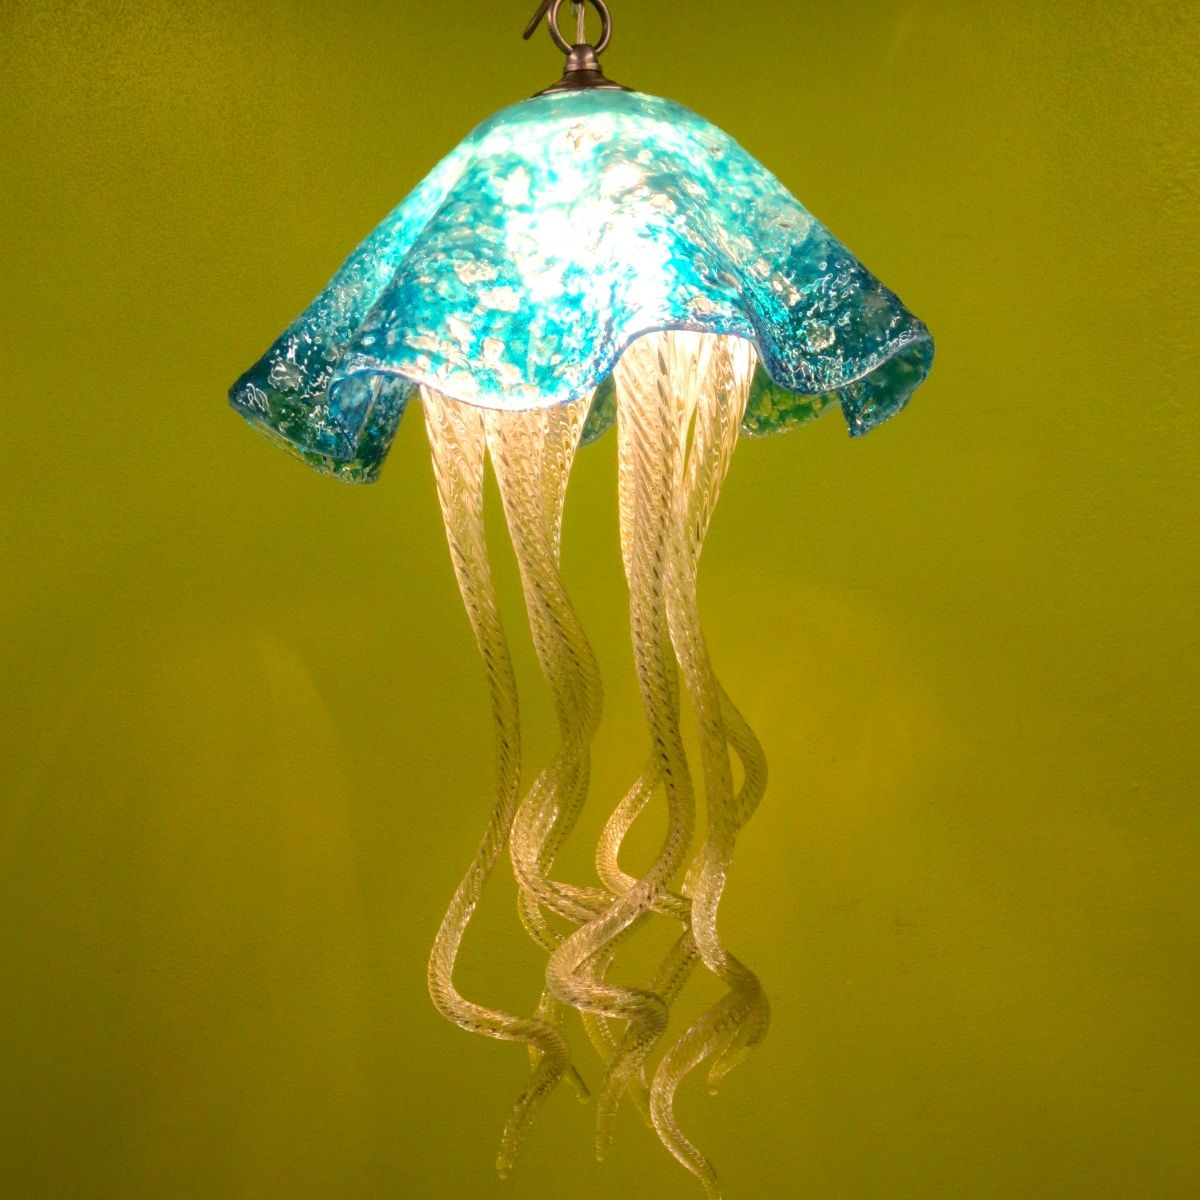 Buy a hand made jellyfish pendant light turquoise jellyfish custom made jellyfish pendant light turquoise jellyfish blown glass lighting art glass chandelier mozeypictures Choice Image